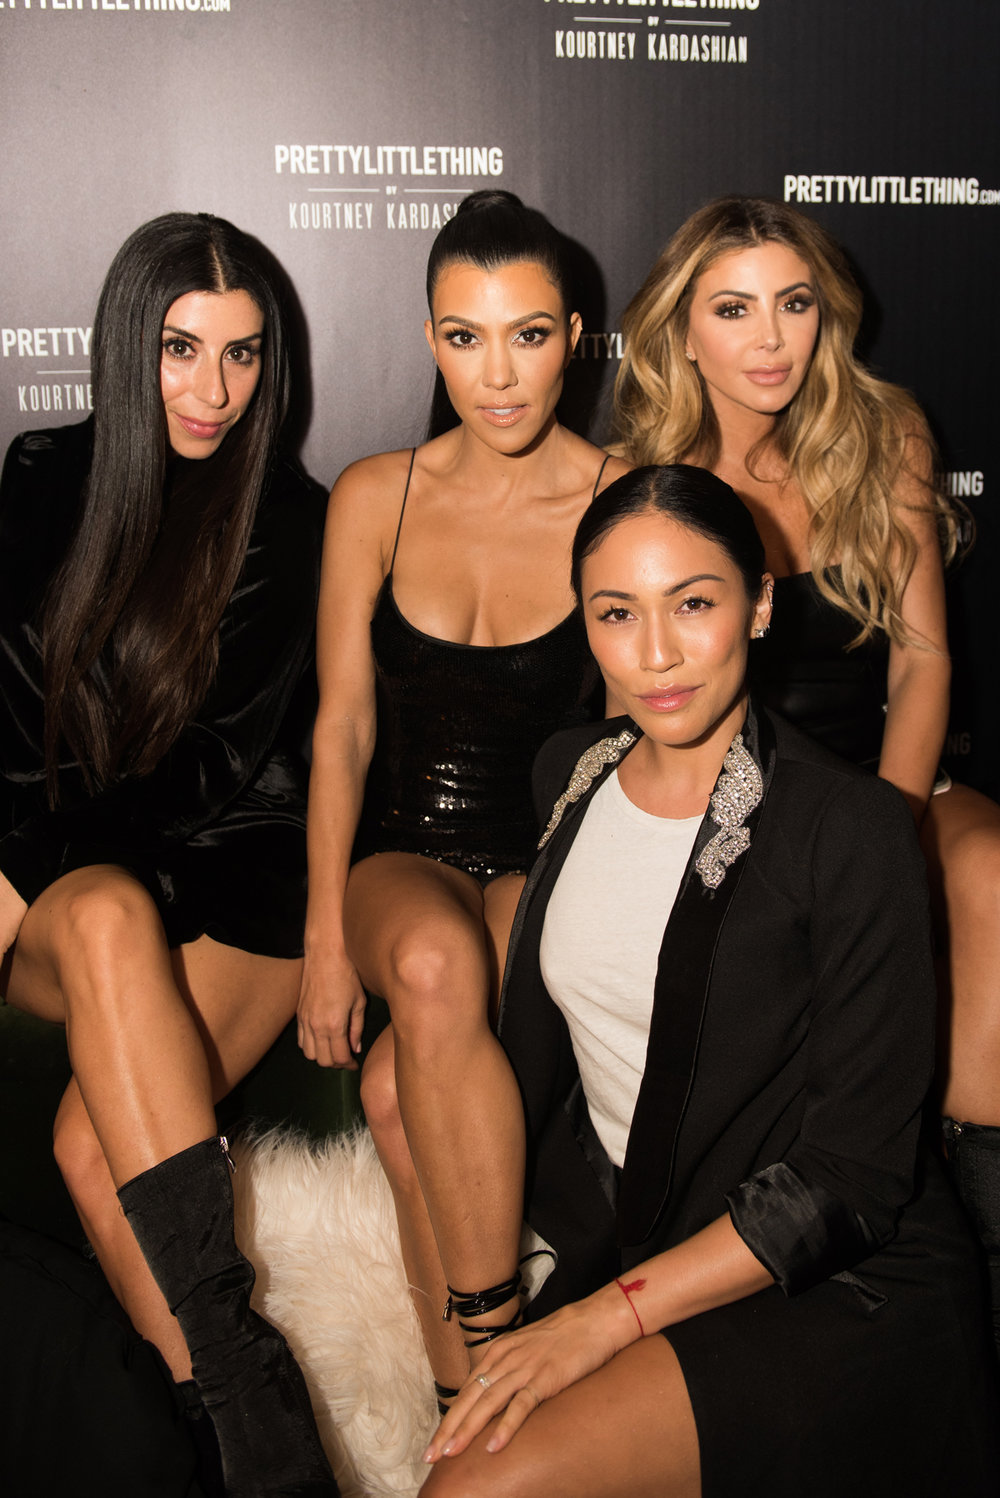 PrettyLittleThing PLT X Kourtney Kardashian Collection Celebrity Launch Party Kourt and her girls.jpg